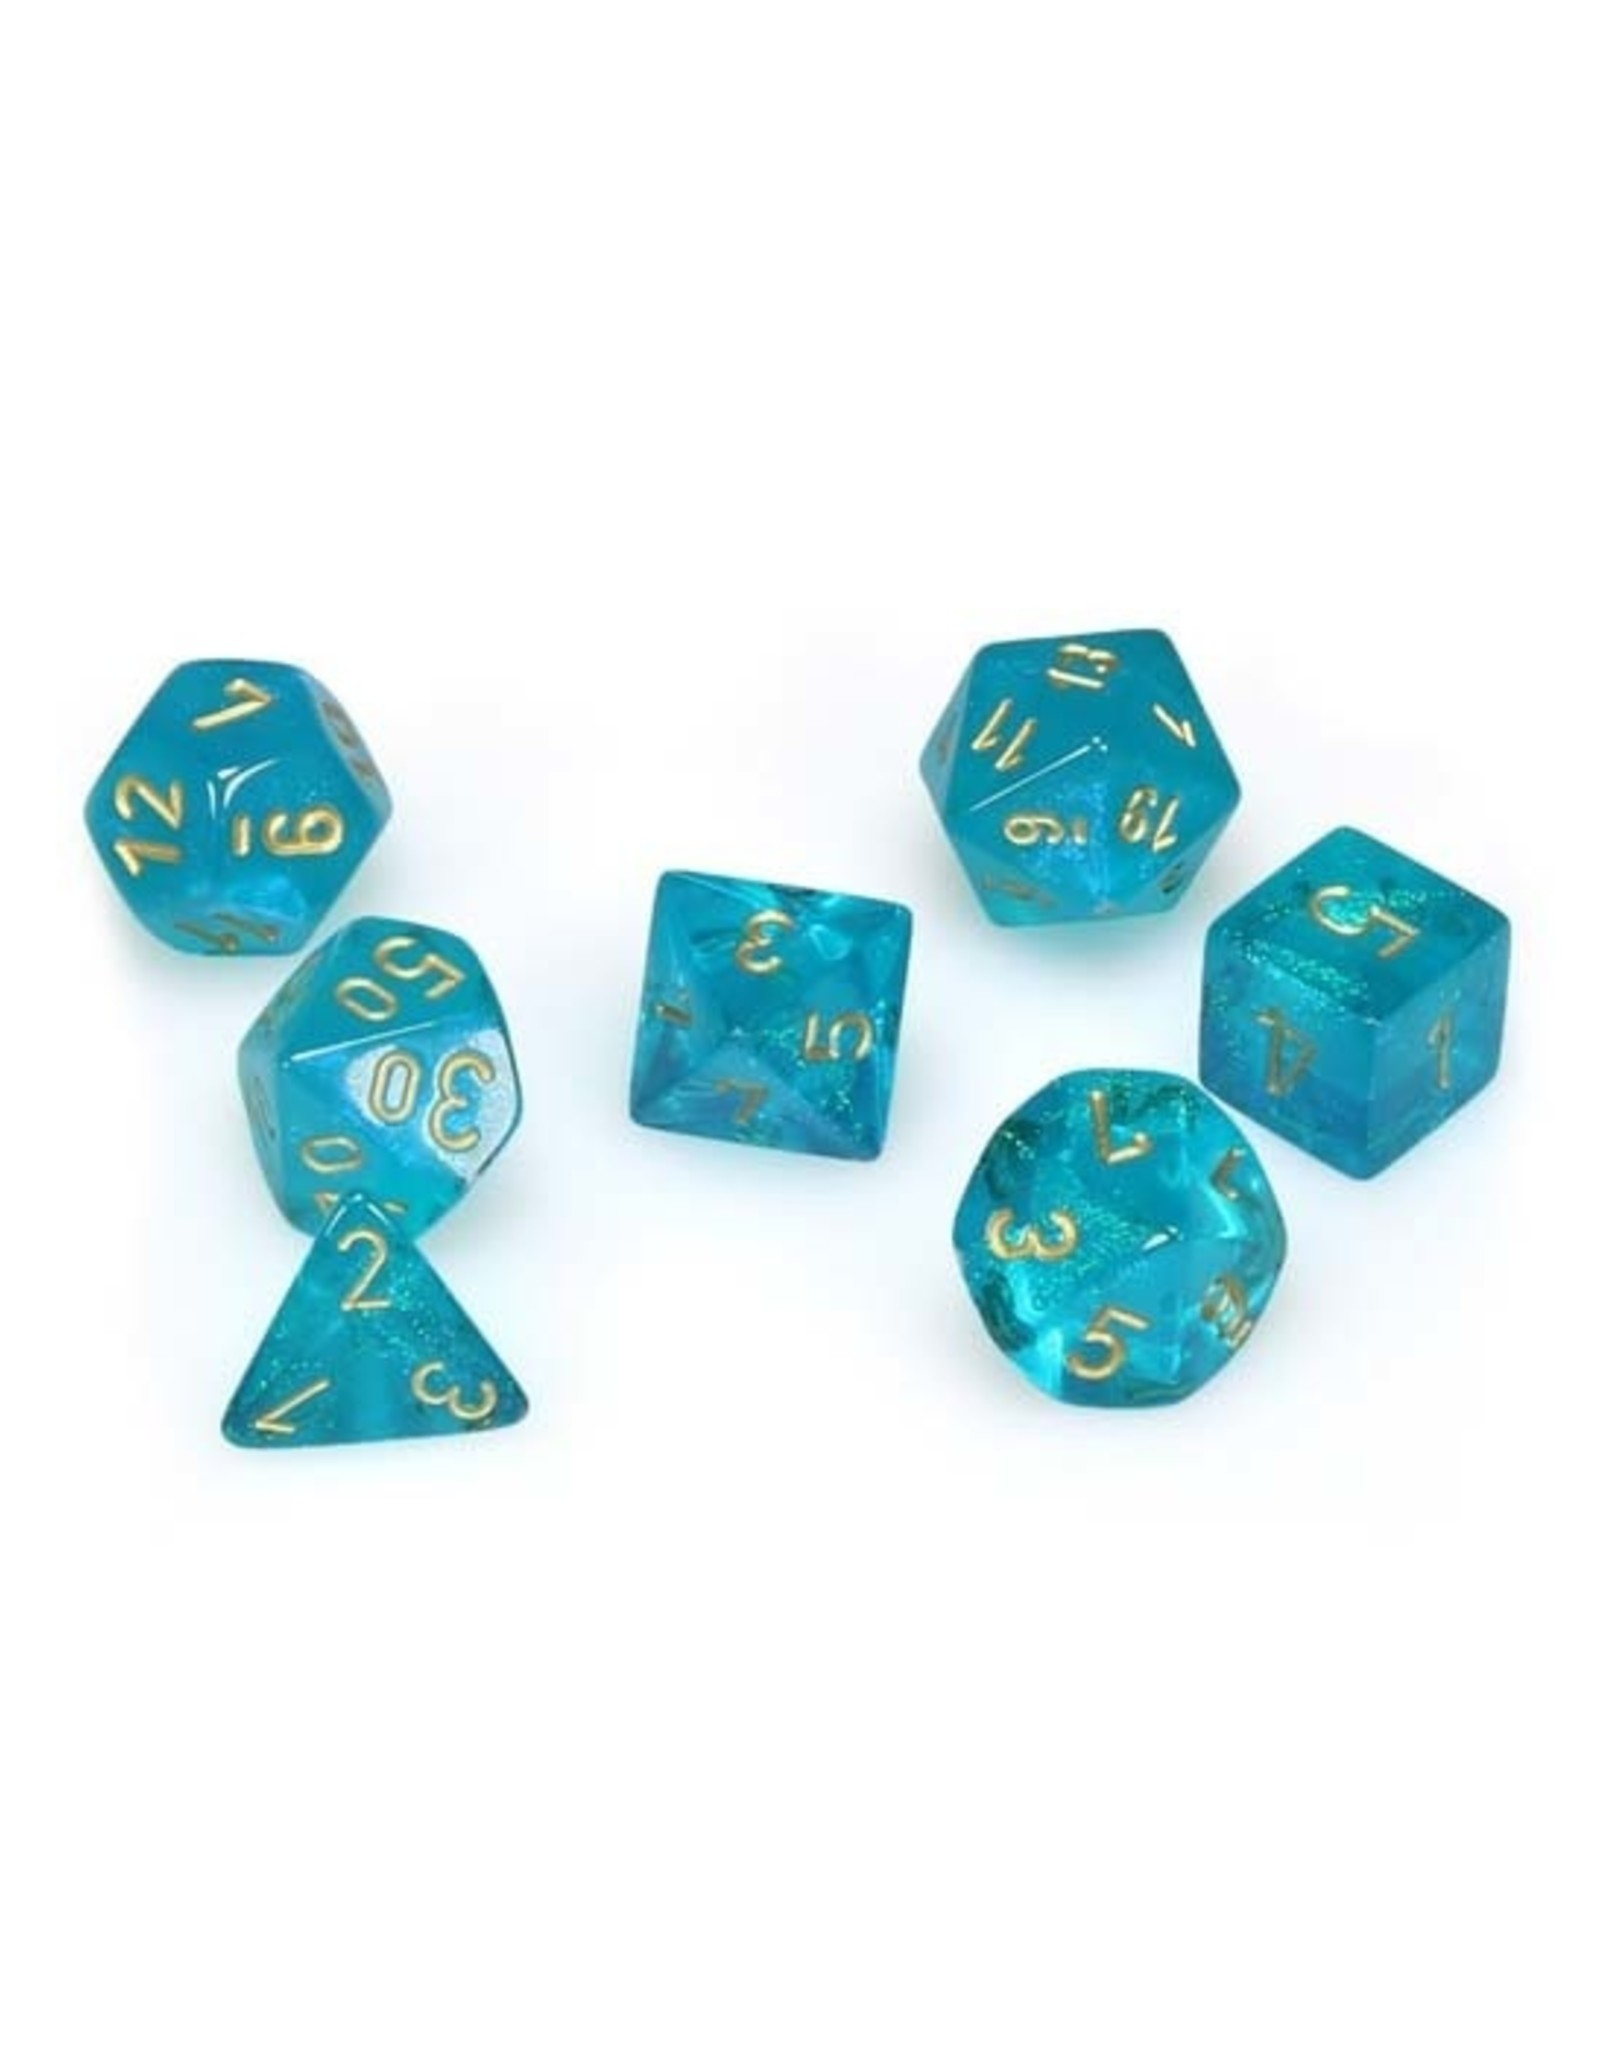 Chessex Chessex: Poly 7 Set - Borealis - Teal w/ Gold